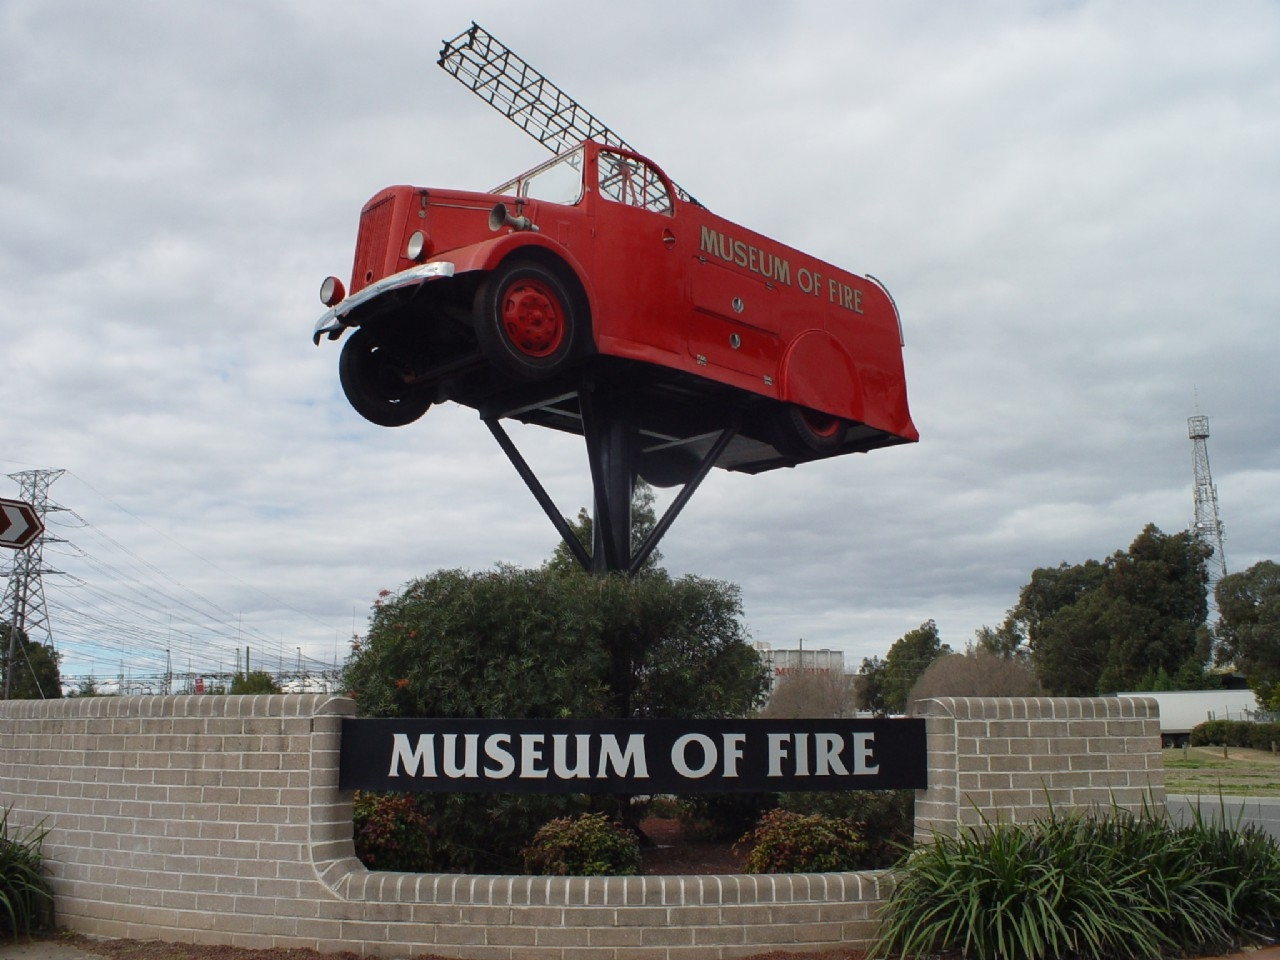 The Museum of Fire